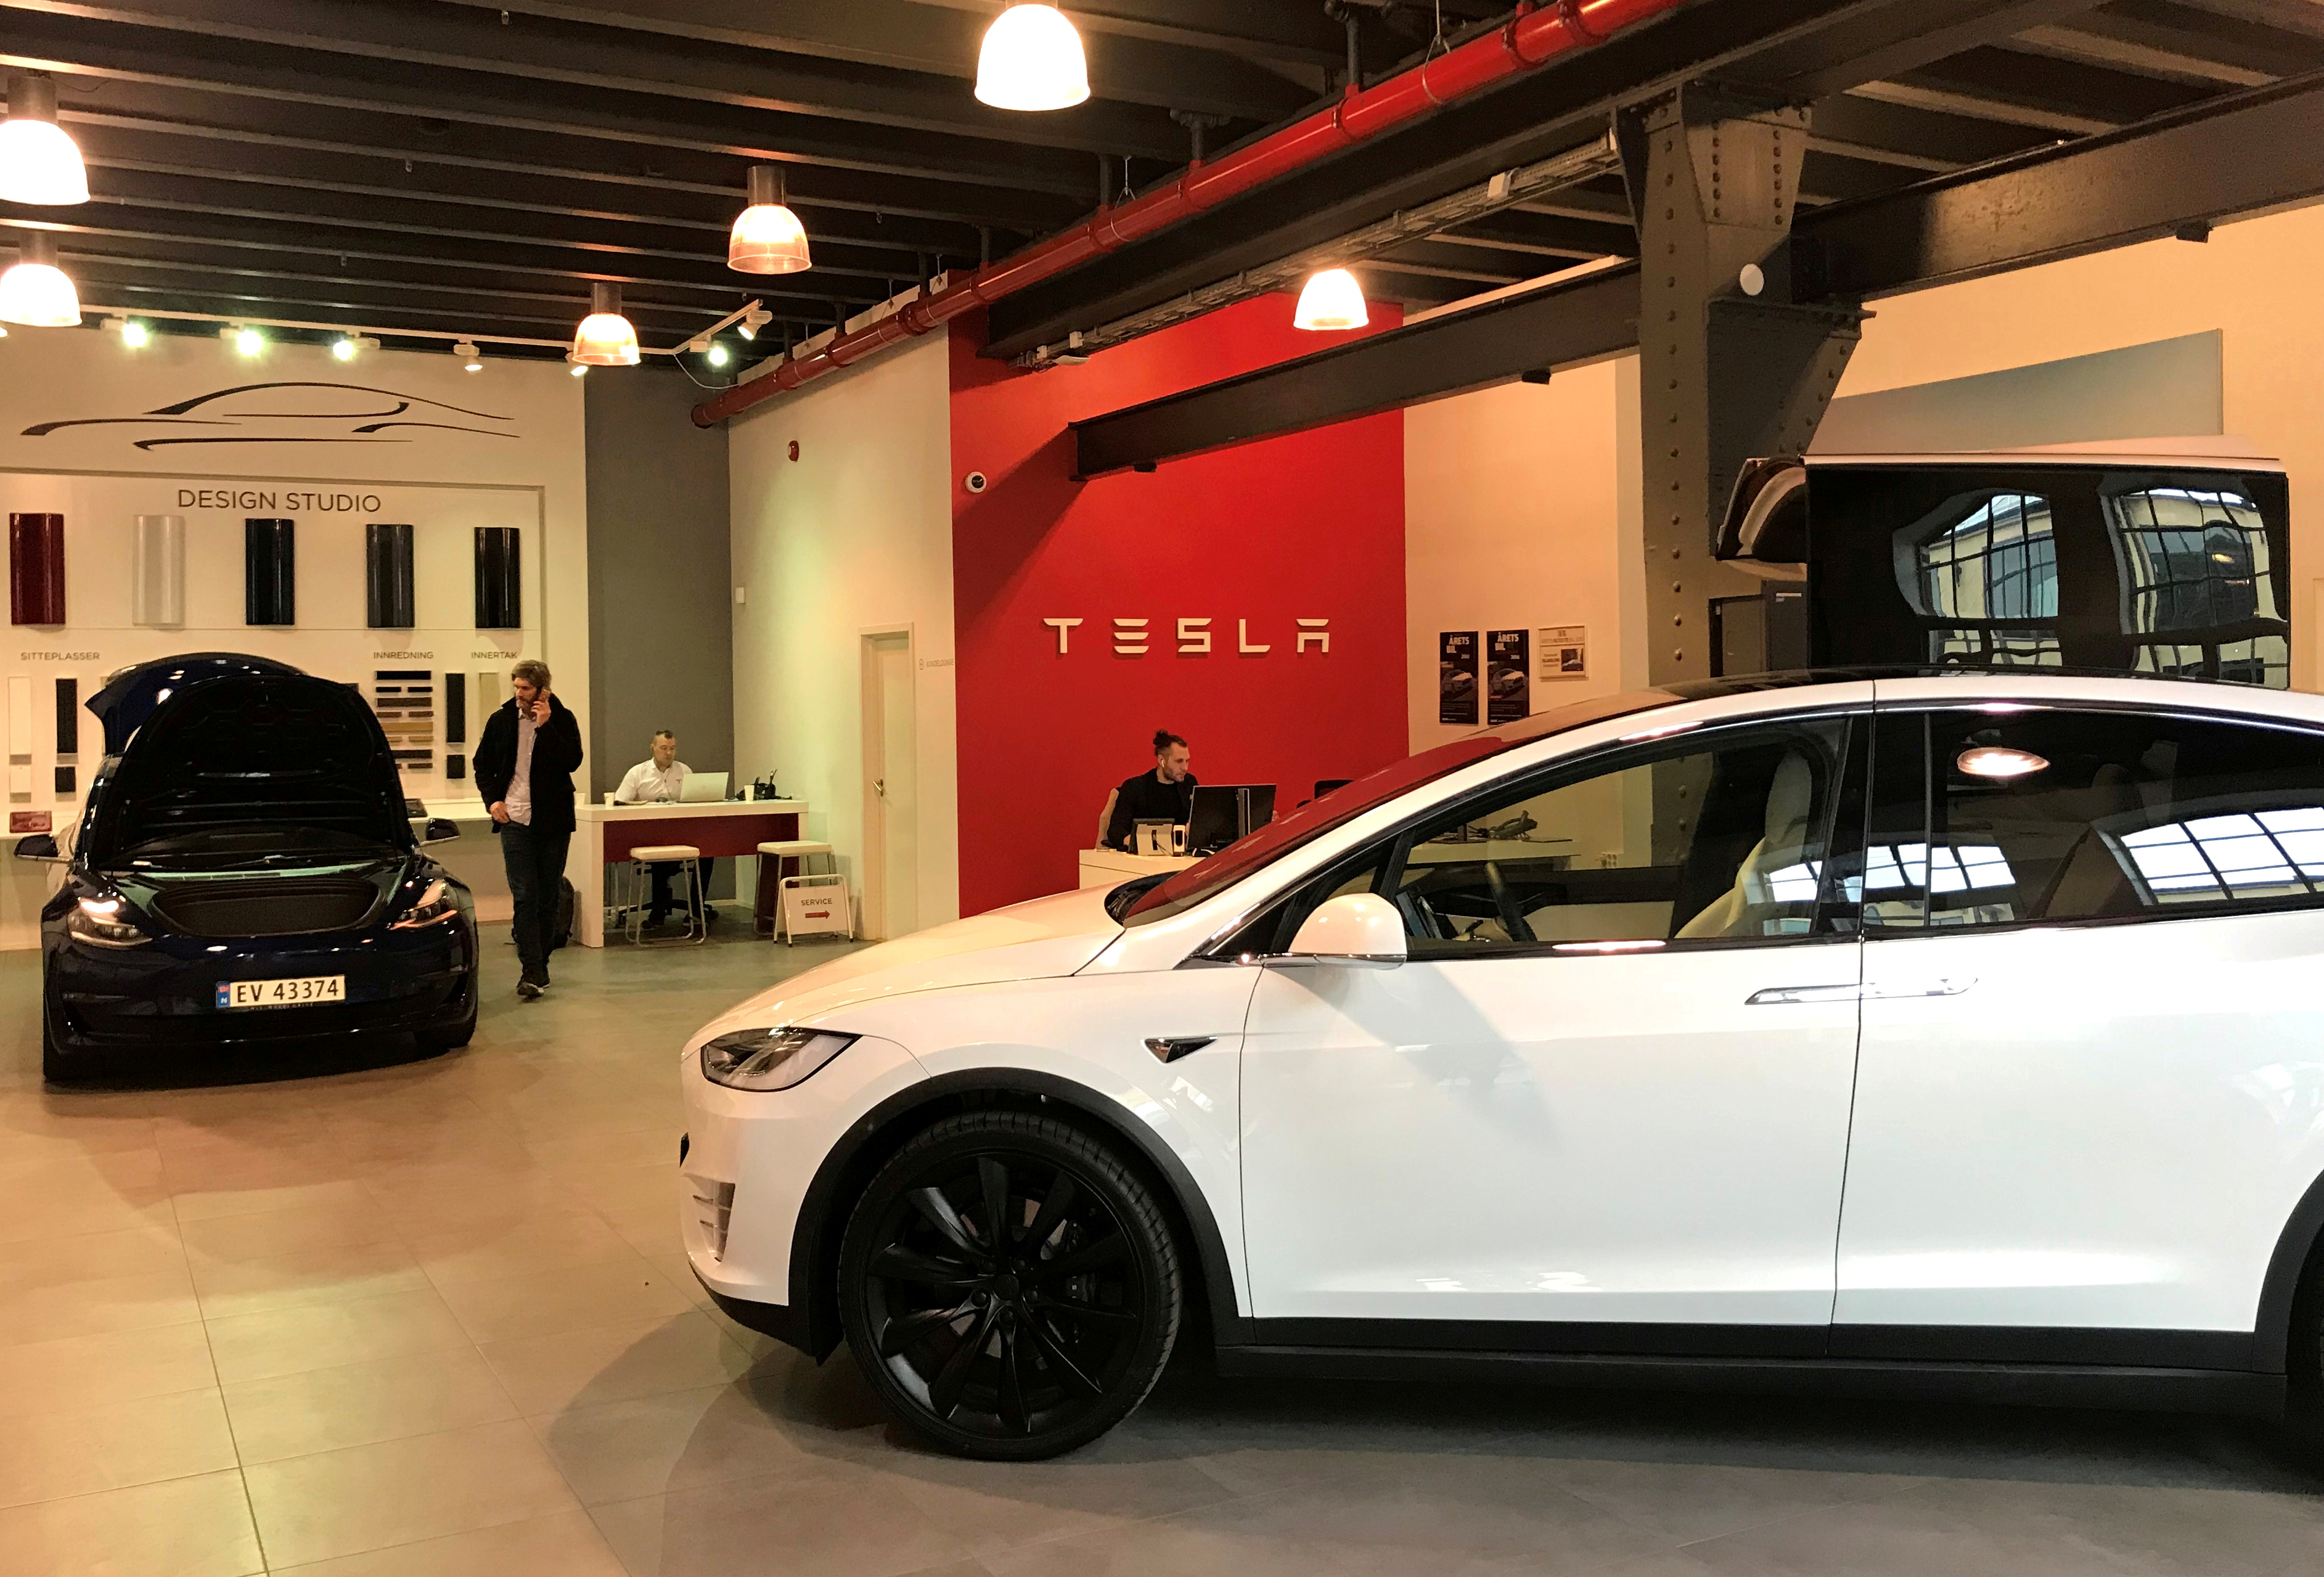 Tesla electric cars are seen in the dealer's showroom in Oslo, Norway March 28, 2019. Picture taken March 28, 2019. REUTERS/Lefteris Karagiannopoulos/File Photo